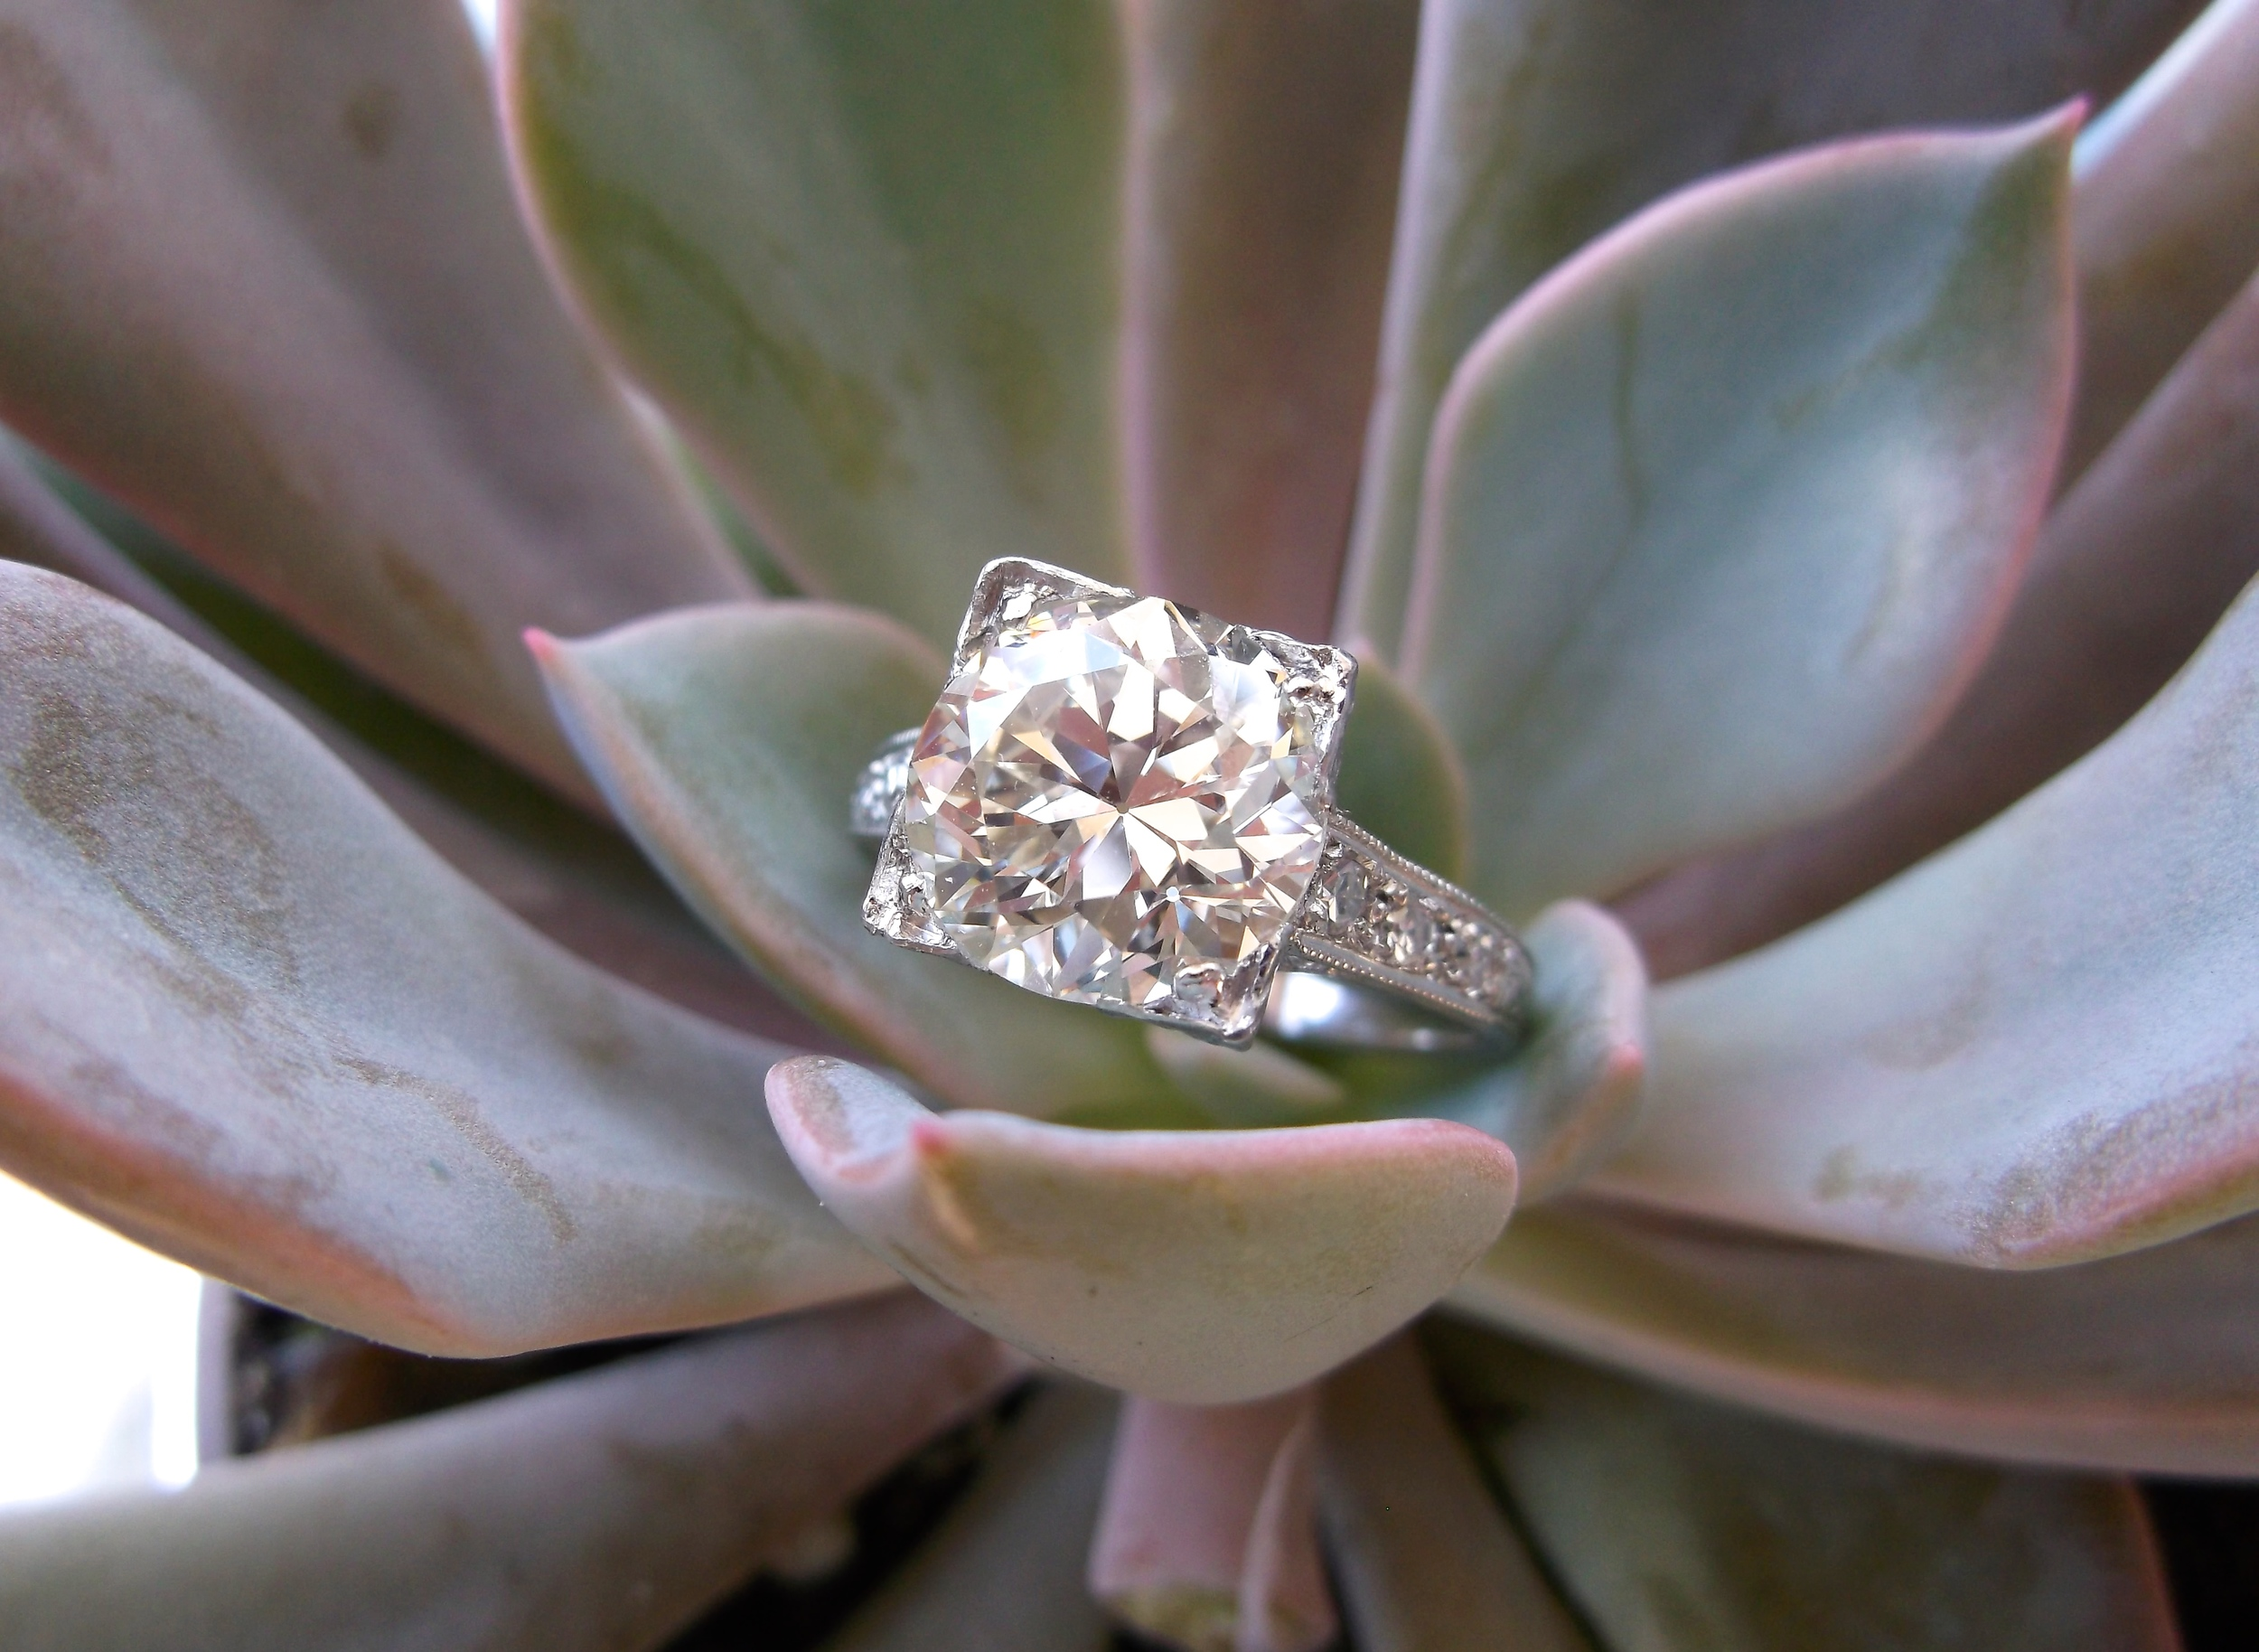 SOLD - An Art Deco knockout! 3.04 carat Old European cut diamond set in a diamond and platinum mounting.